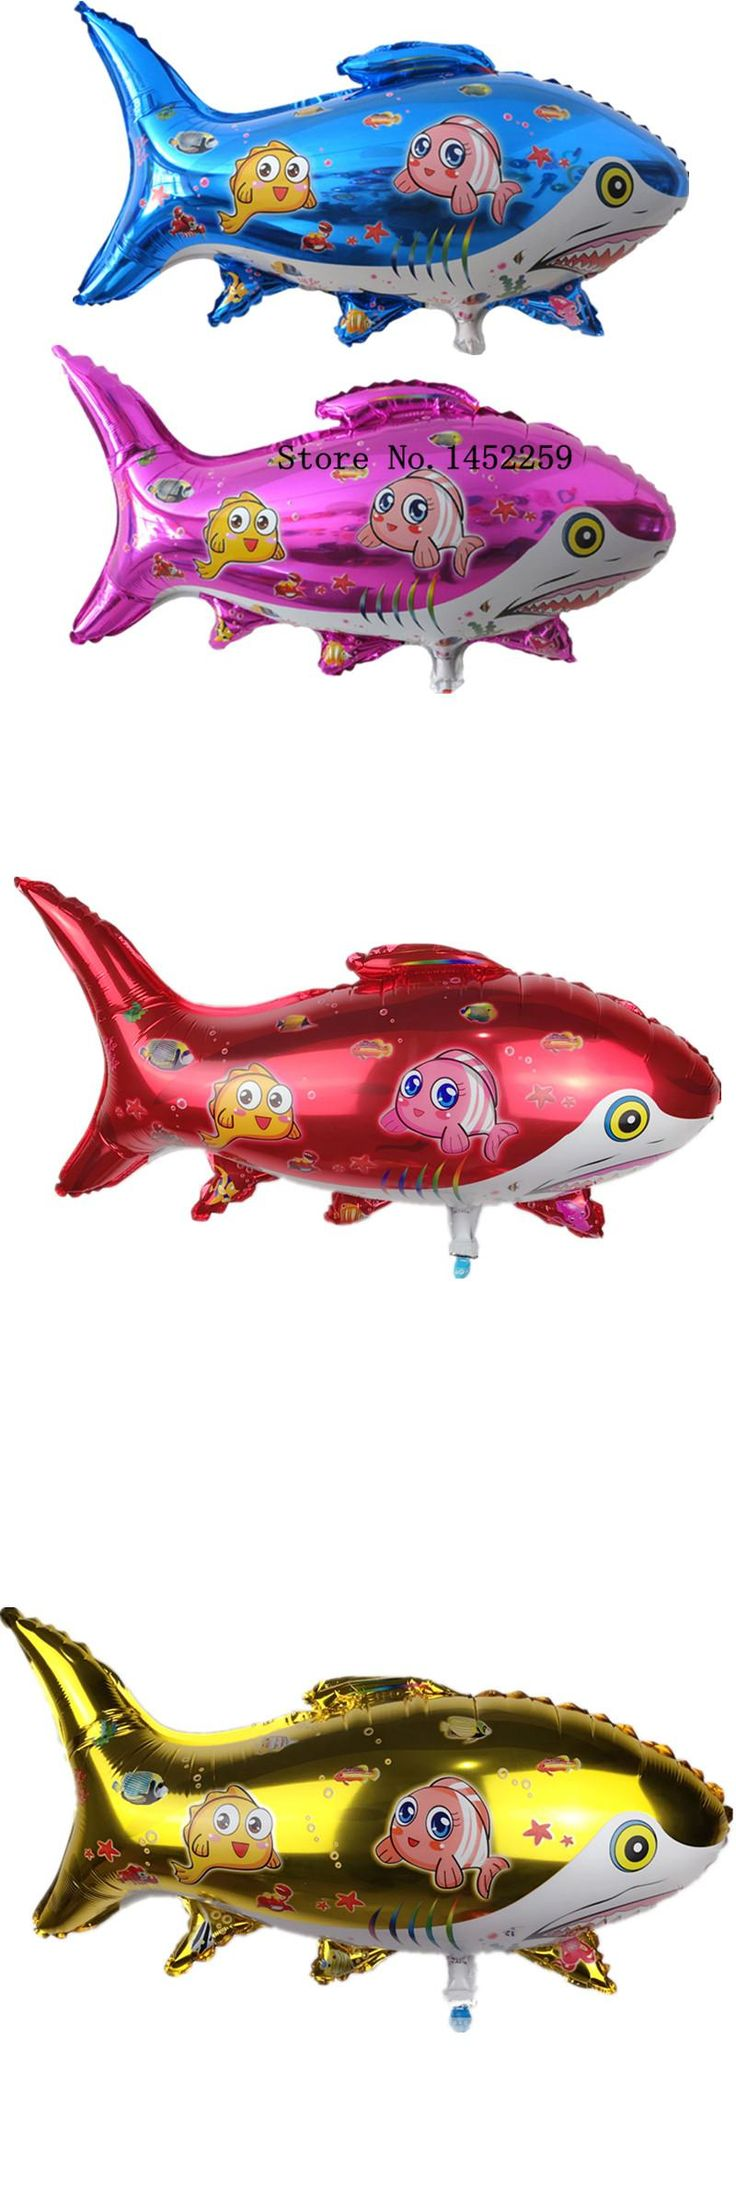 [Visit to Buy] XXPWJ Free shipping the new aluminum film balloon toy for children birthday party shark balloon wholesale #Advertisement